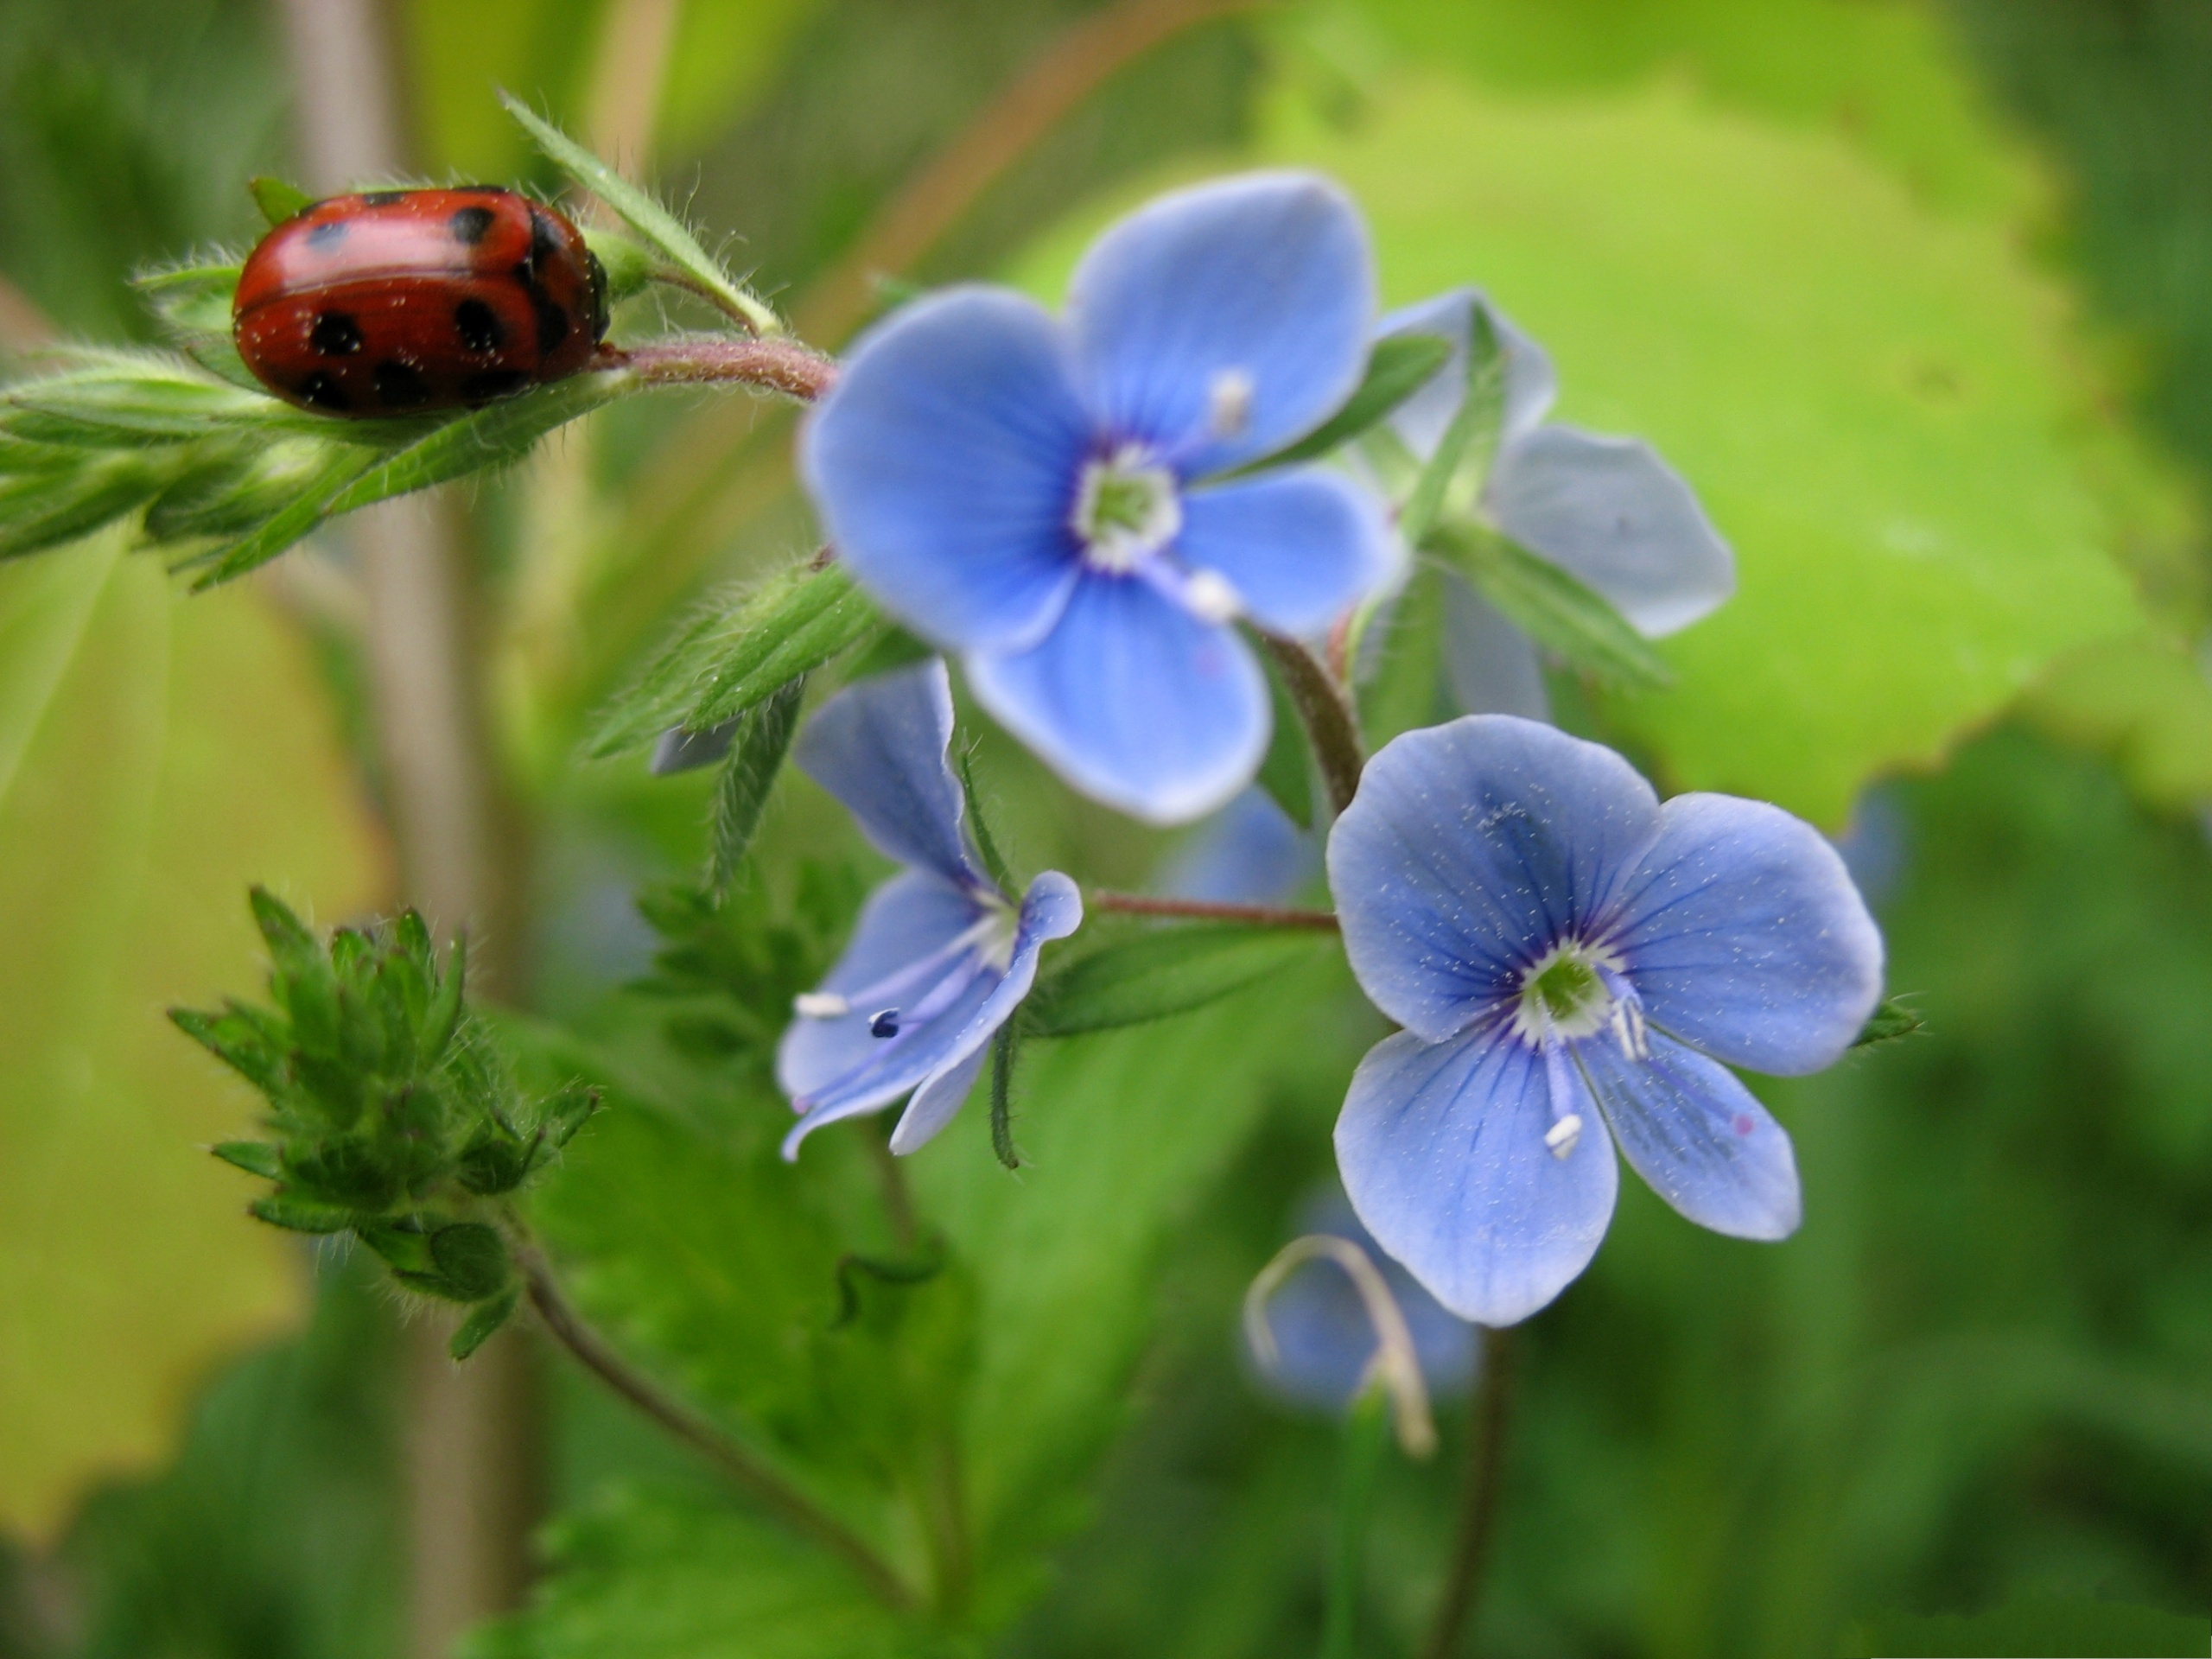 click to free download the wallpaper--Blue Flowers Picture, Ladybug Approaching Blue Flowers, Be Slow and Careful! 2560X1920 free wallpaper download